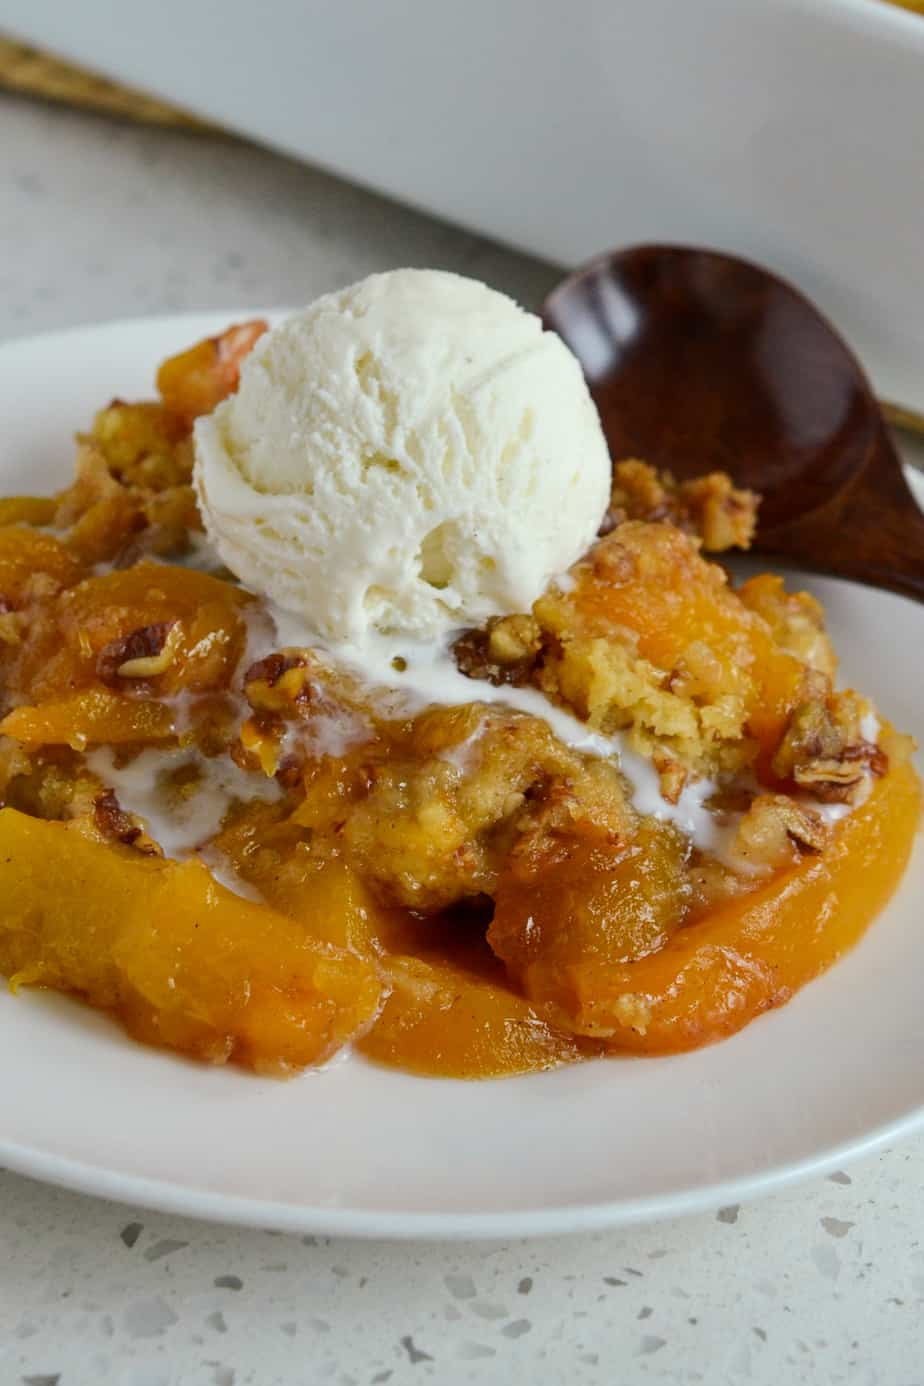 This scrumptious Peach Dump Cake is a cinch to make and always a hit at potlucks, family reunions and parties.